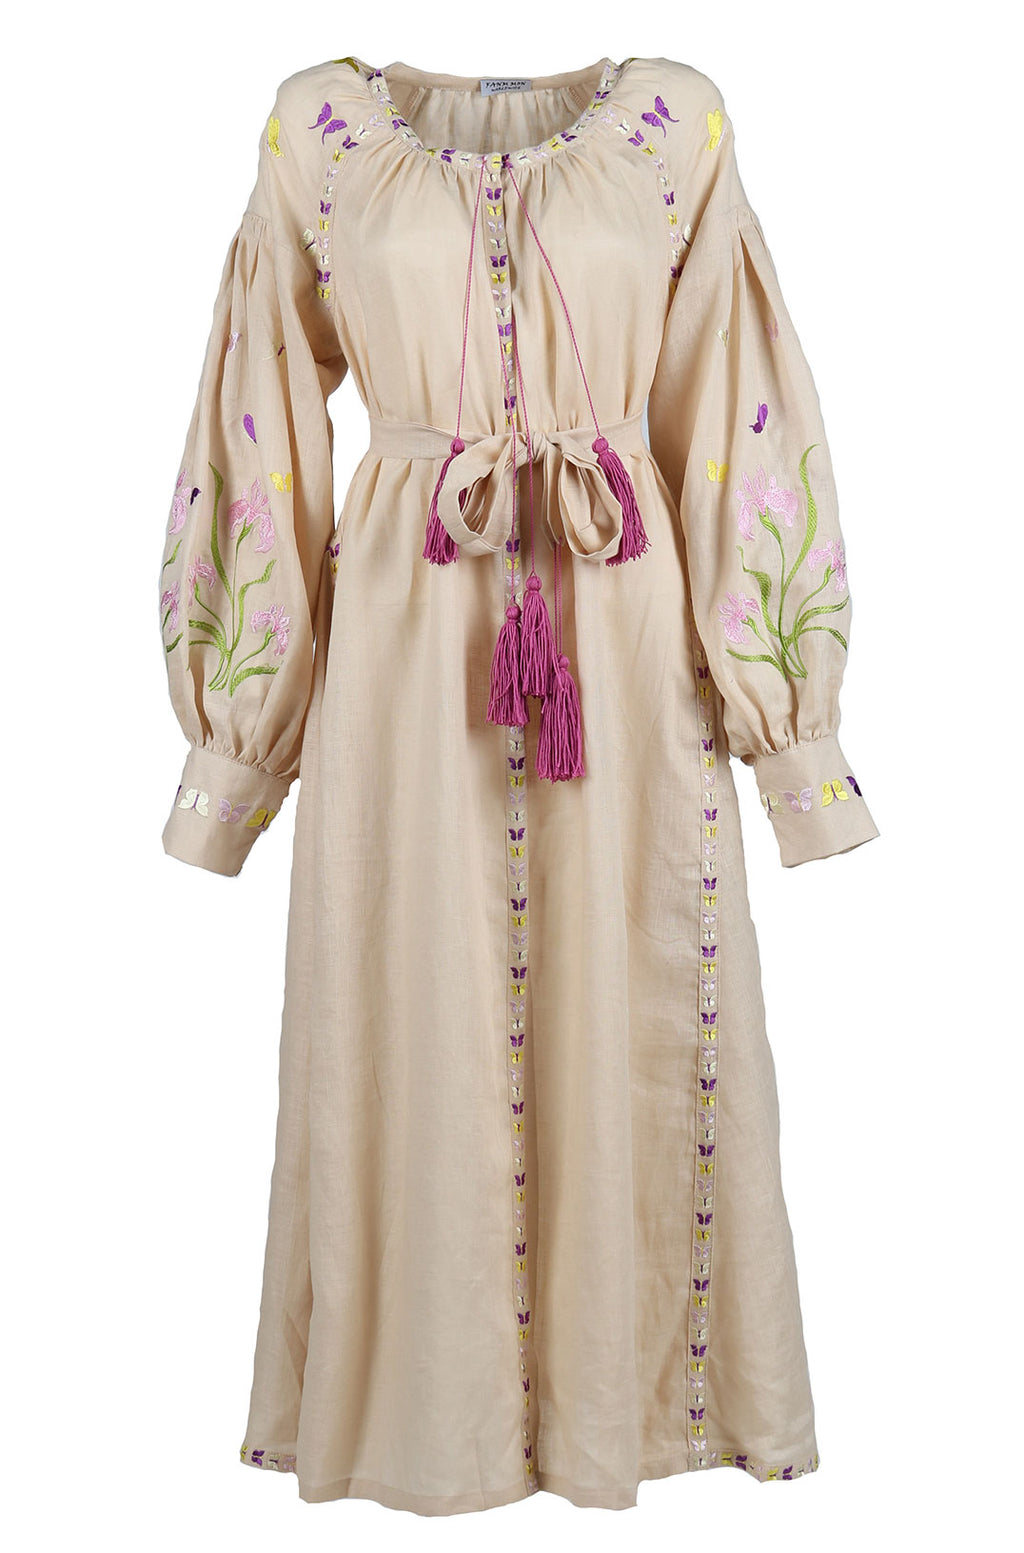 Fanm Mon Blush Linen Floral Butterfly Embroidery Vyshyvanka MIDI Dress MD0124